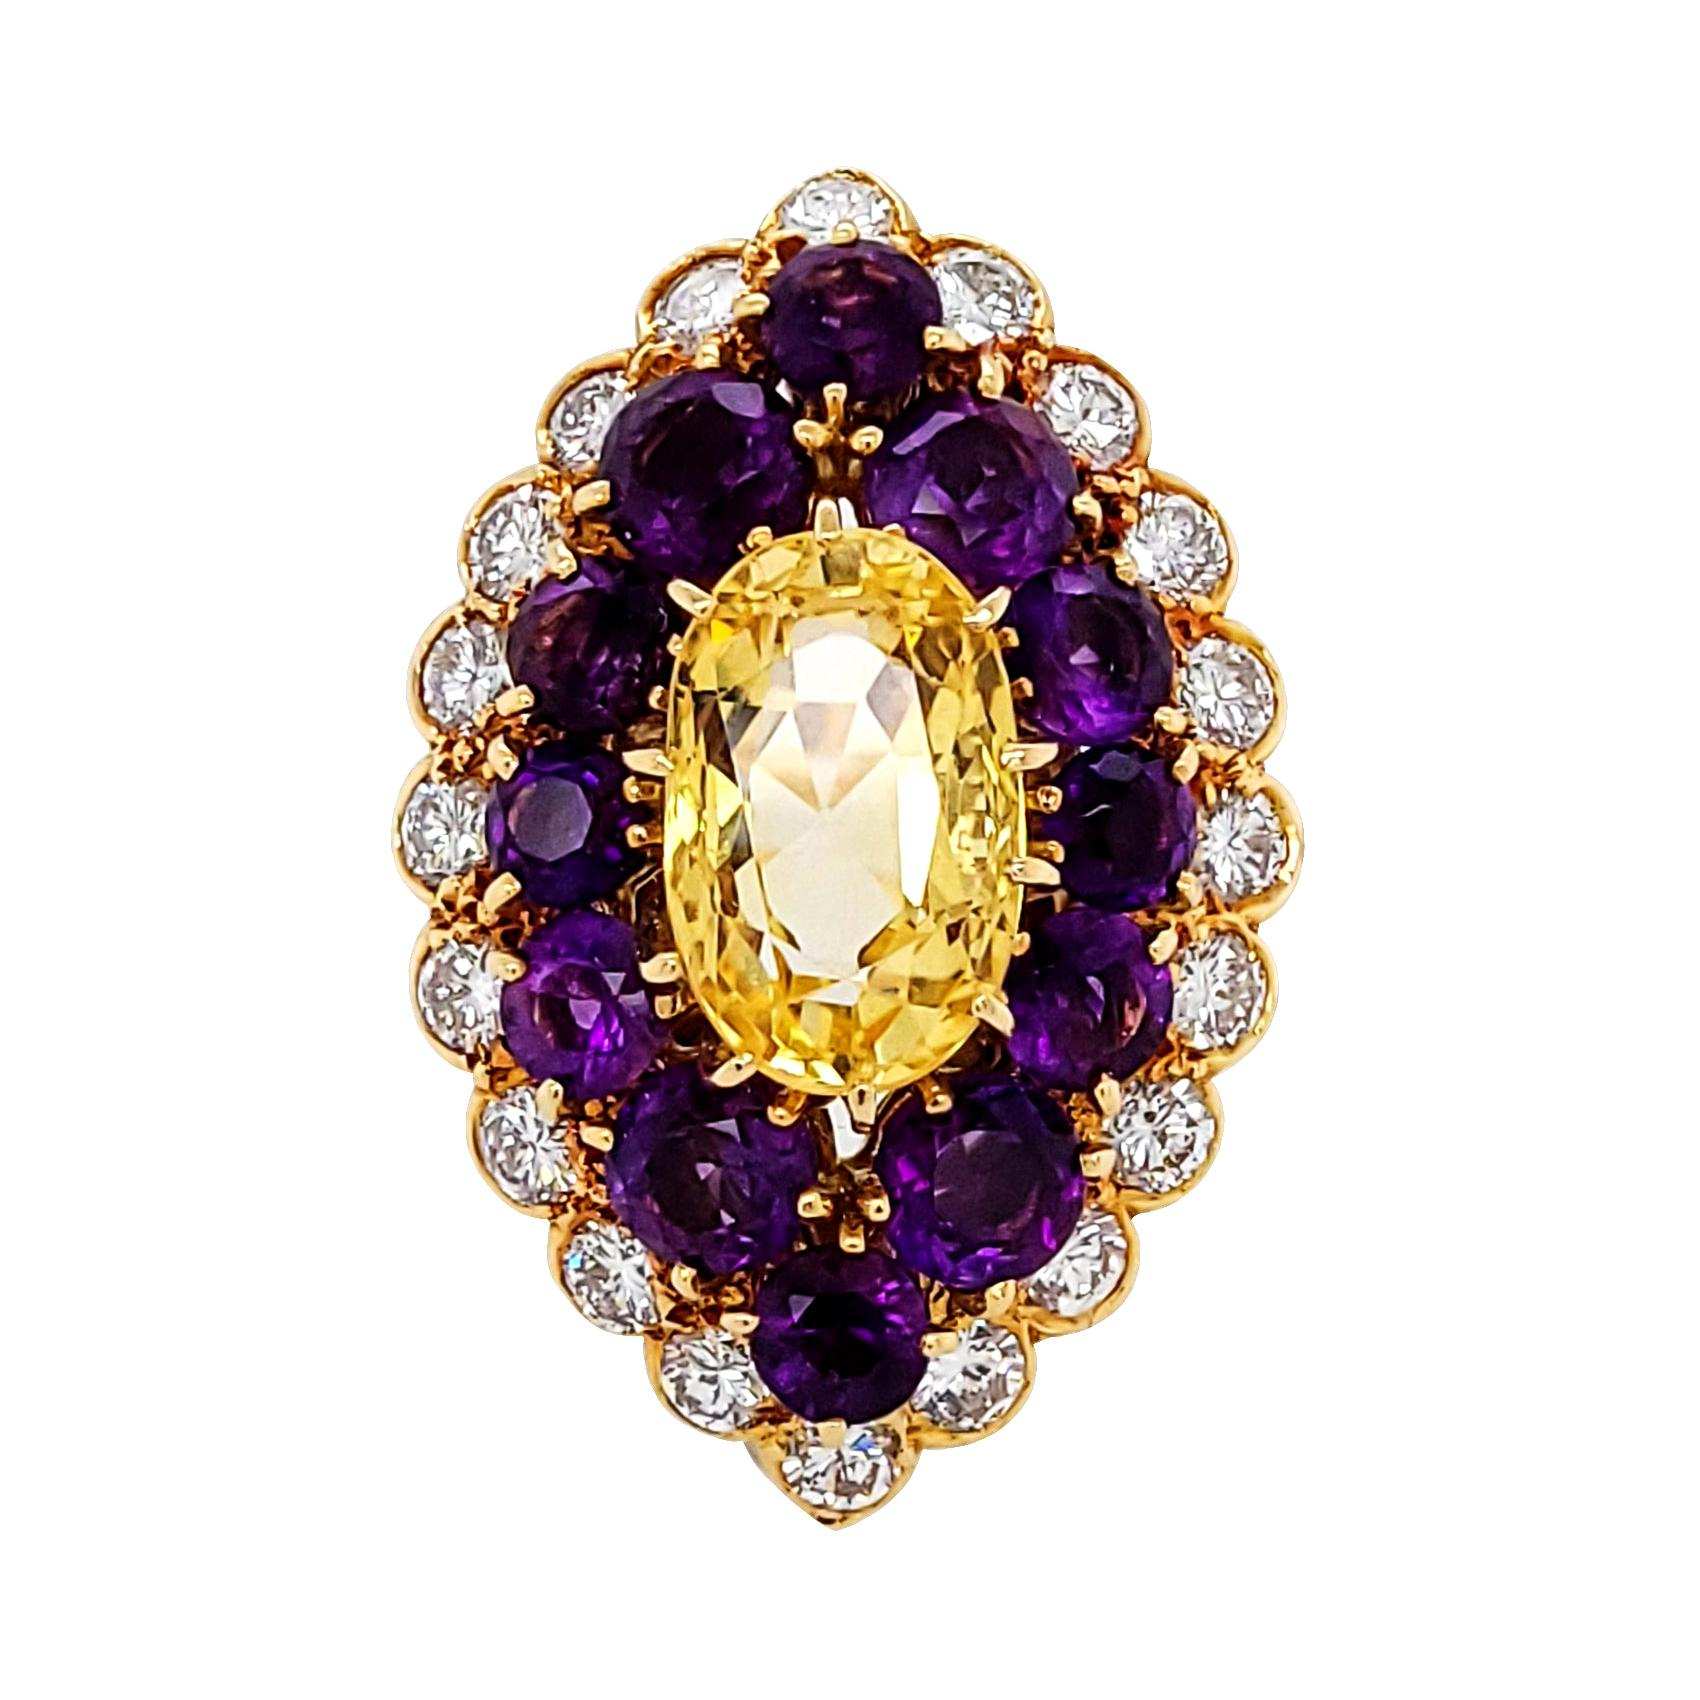 Van Cleef & Arpels Yellow Sapphire Amethyst Diamond Vintage Cocktail Ring